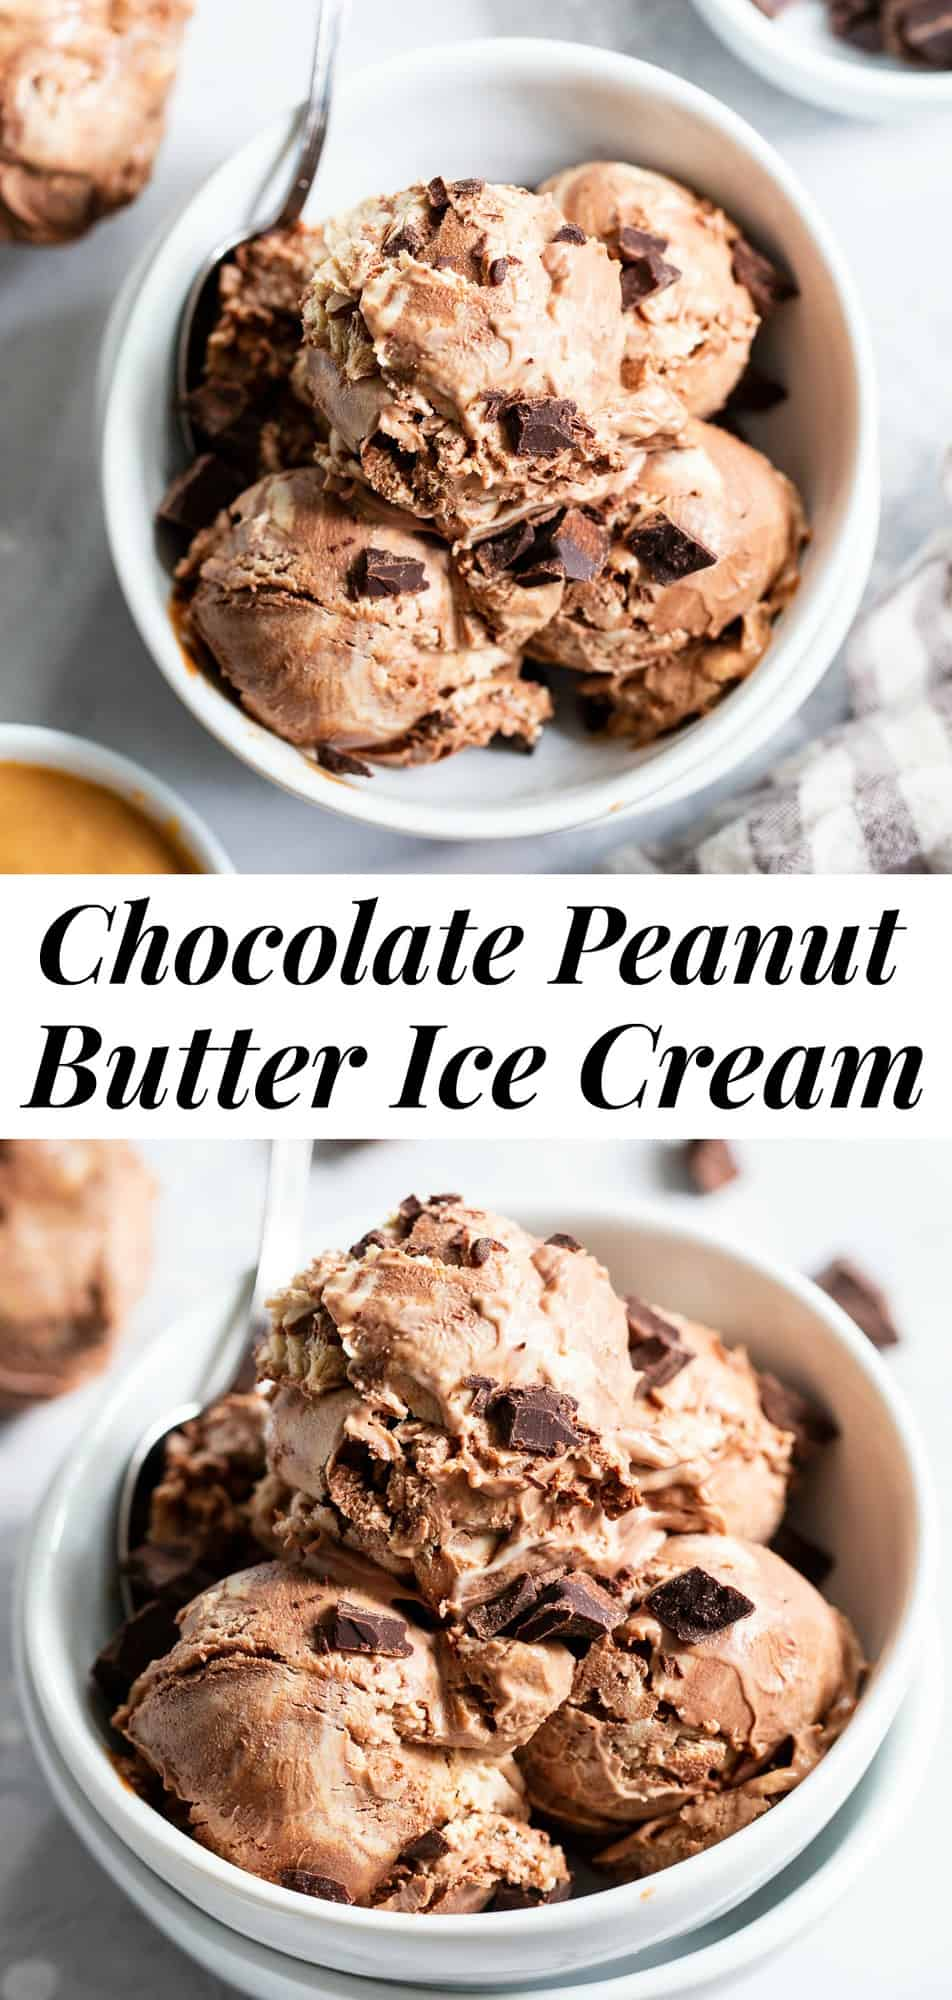 This paleo and vegan chocolate peanut butter ice cream is rich, creamy and super easy to make!   No-churn chocolate ice cream is swirled with a peanut butter layer (or other nut butter) and dark chocolate chunks.  It's family approved and irresistibly chocolatey! #paleo #vegan #veganicecream #icecream